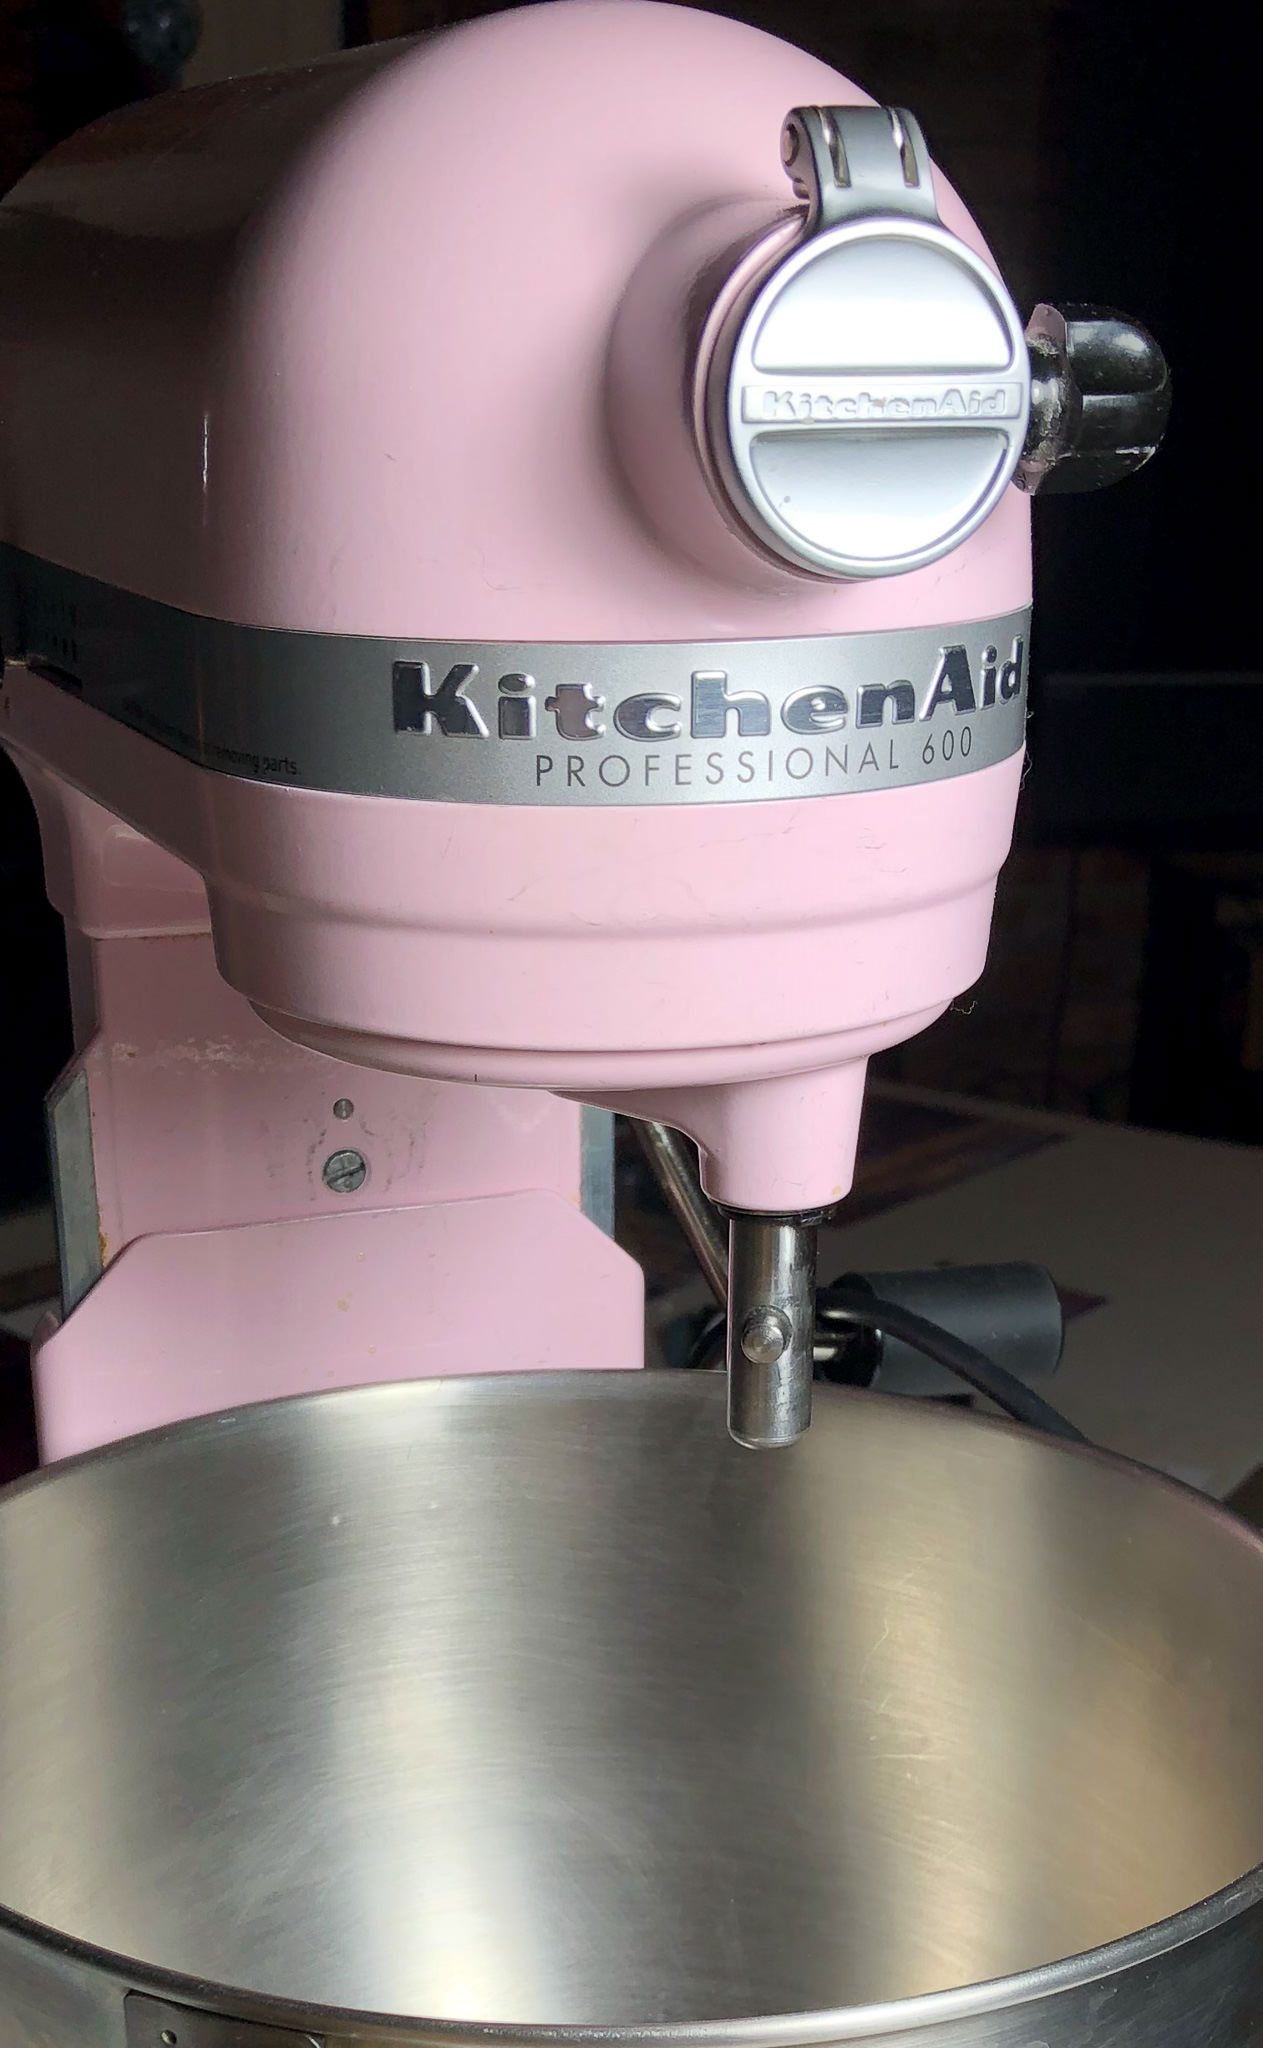 Amazing Kitchenaid Pro 600 Repair All The Pages Are My Days Download Free Architecture Designs Scobabritishbridgeorg